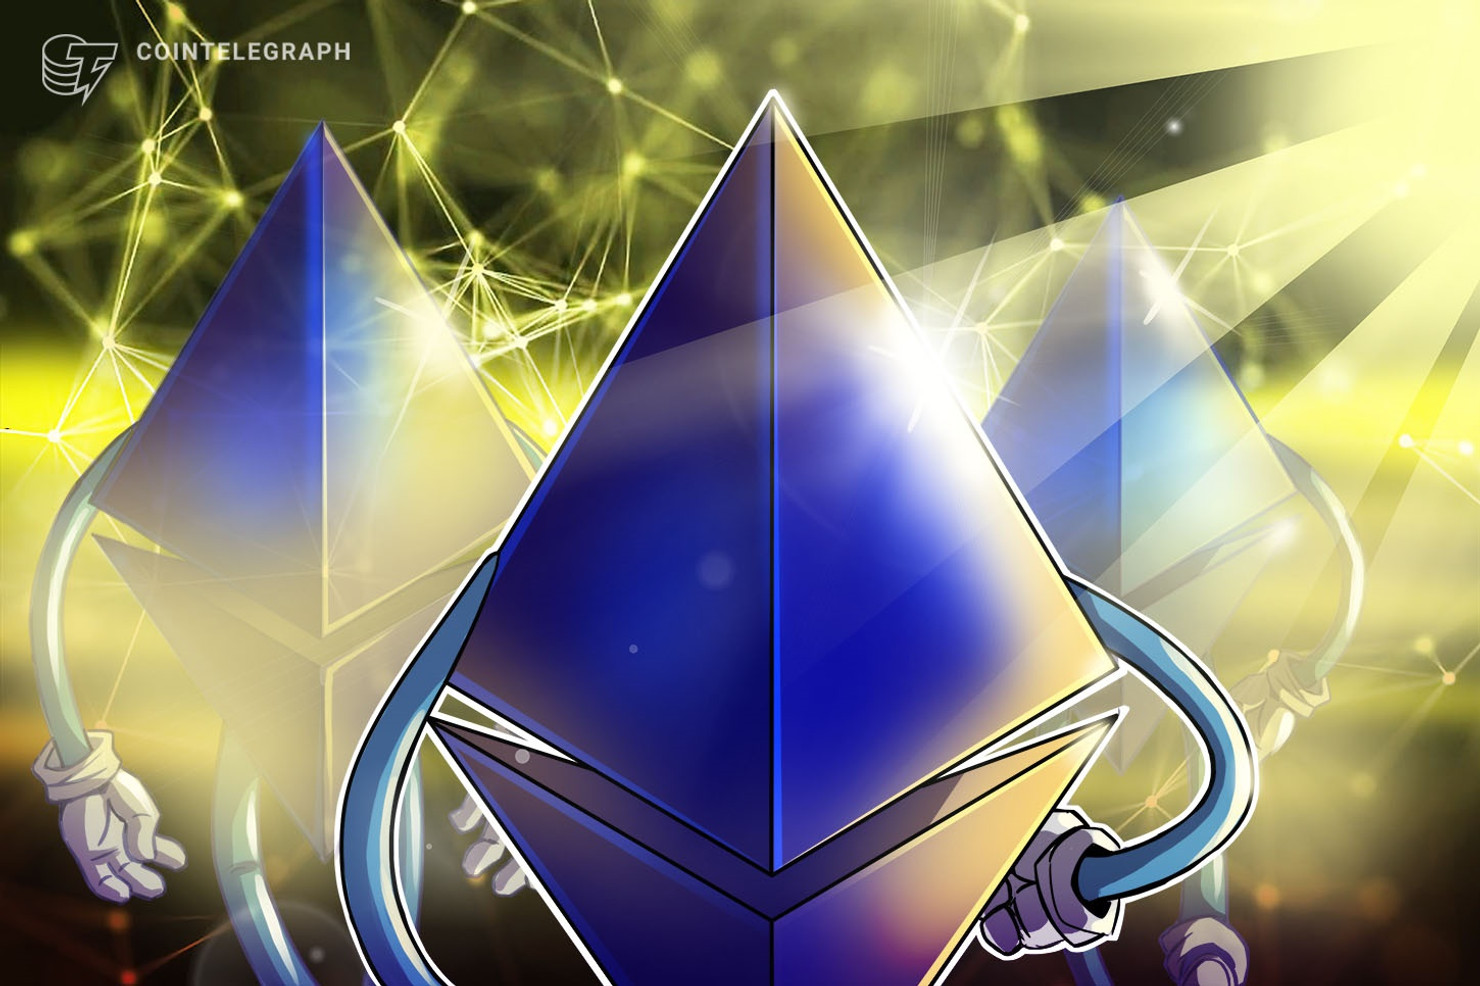 Ethereum's market cap exceeds that of platinum for the first time